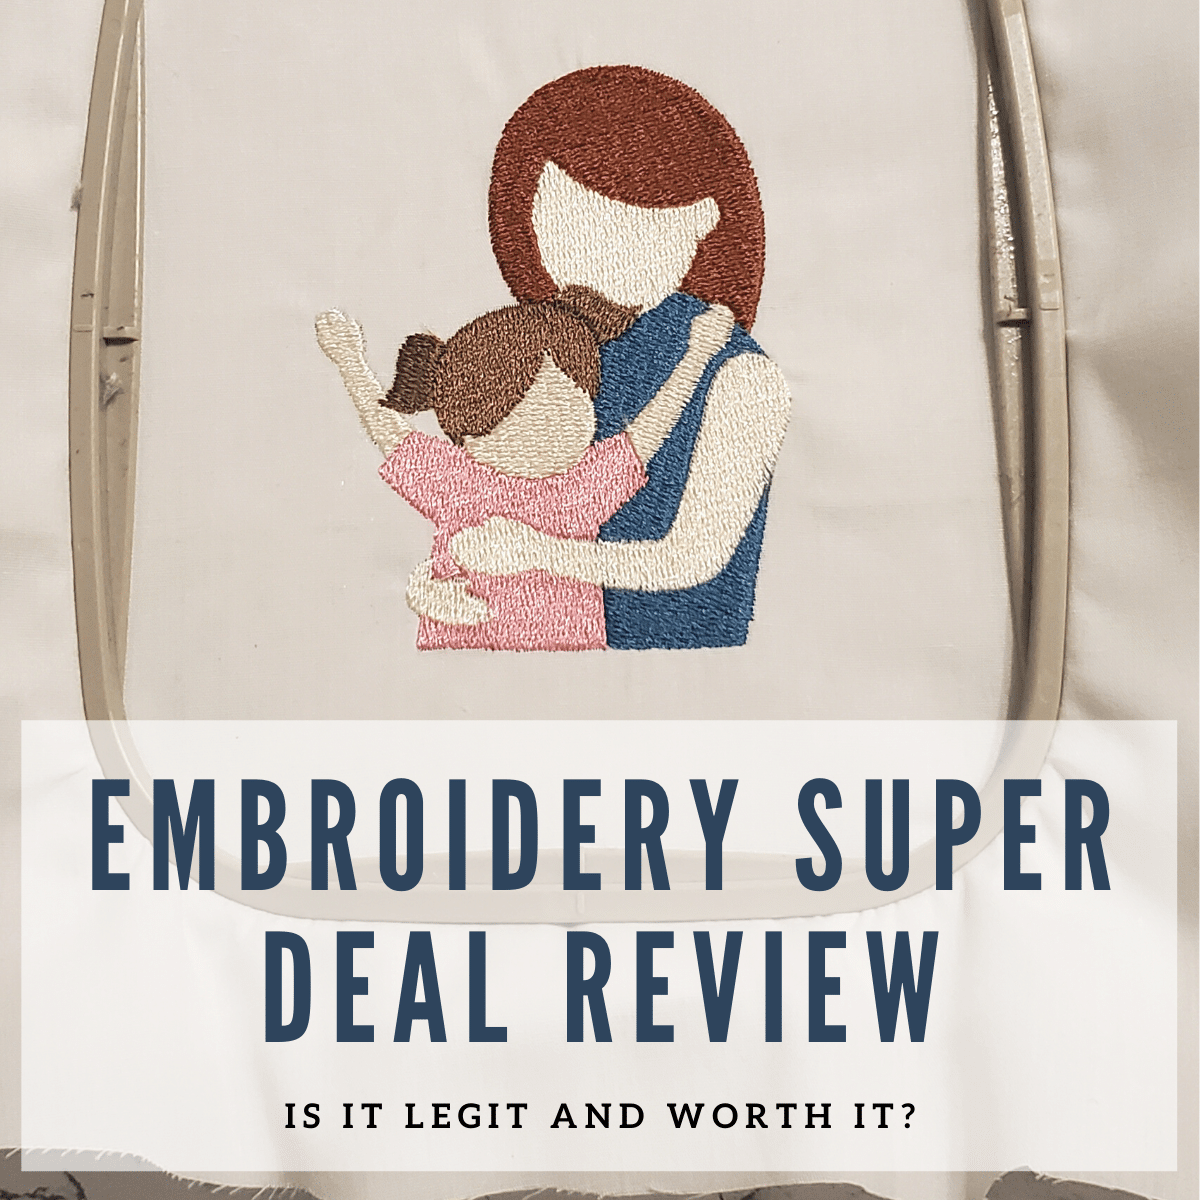 Embroidery Super Deal Review – Is It Legit and Worth It?